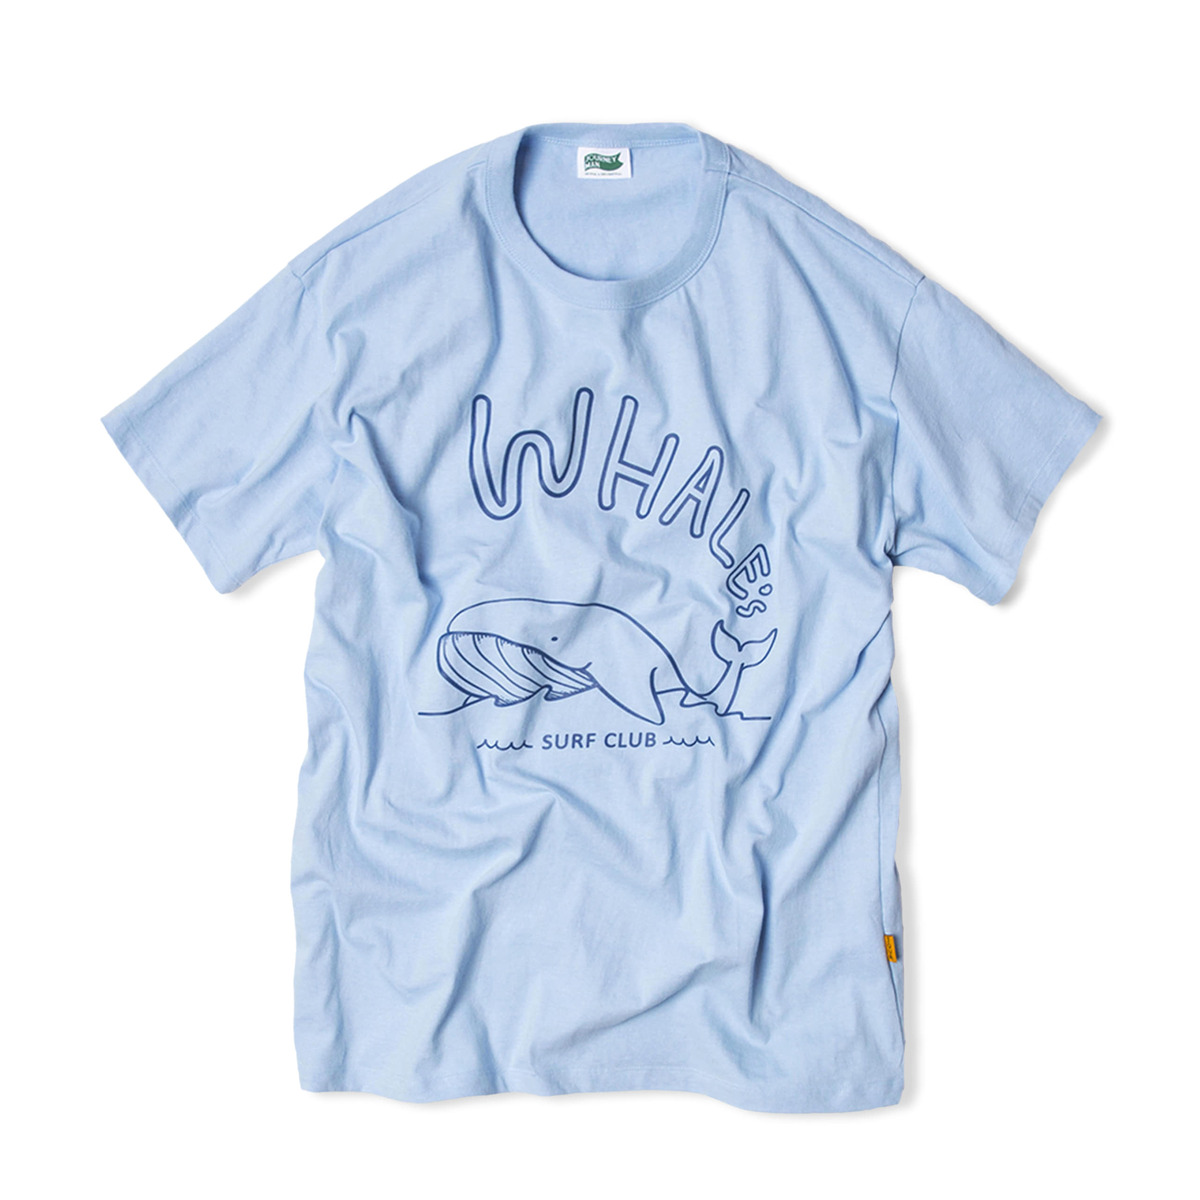 WHALE'S SURFER TEAM WHALE'S SWIMMING T-SHIRTS 'OCEAN BLUE'